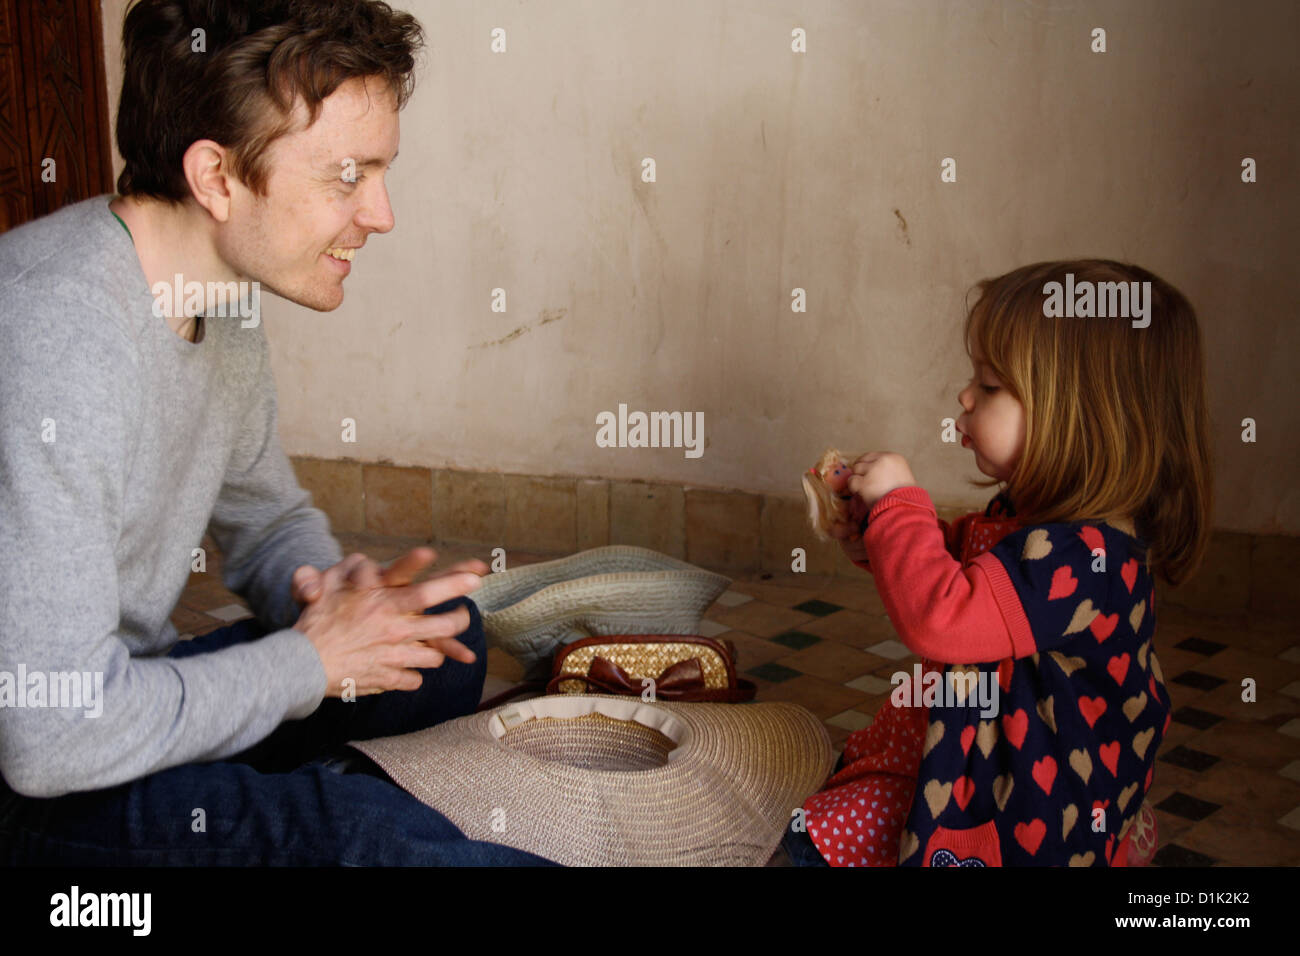 A father and daughter playing - Stock Image